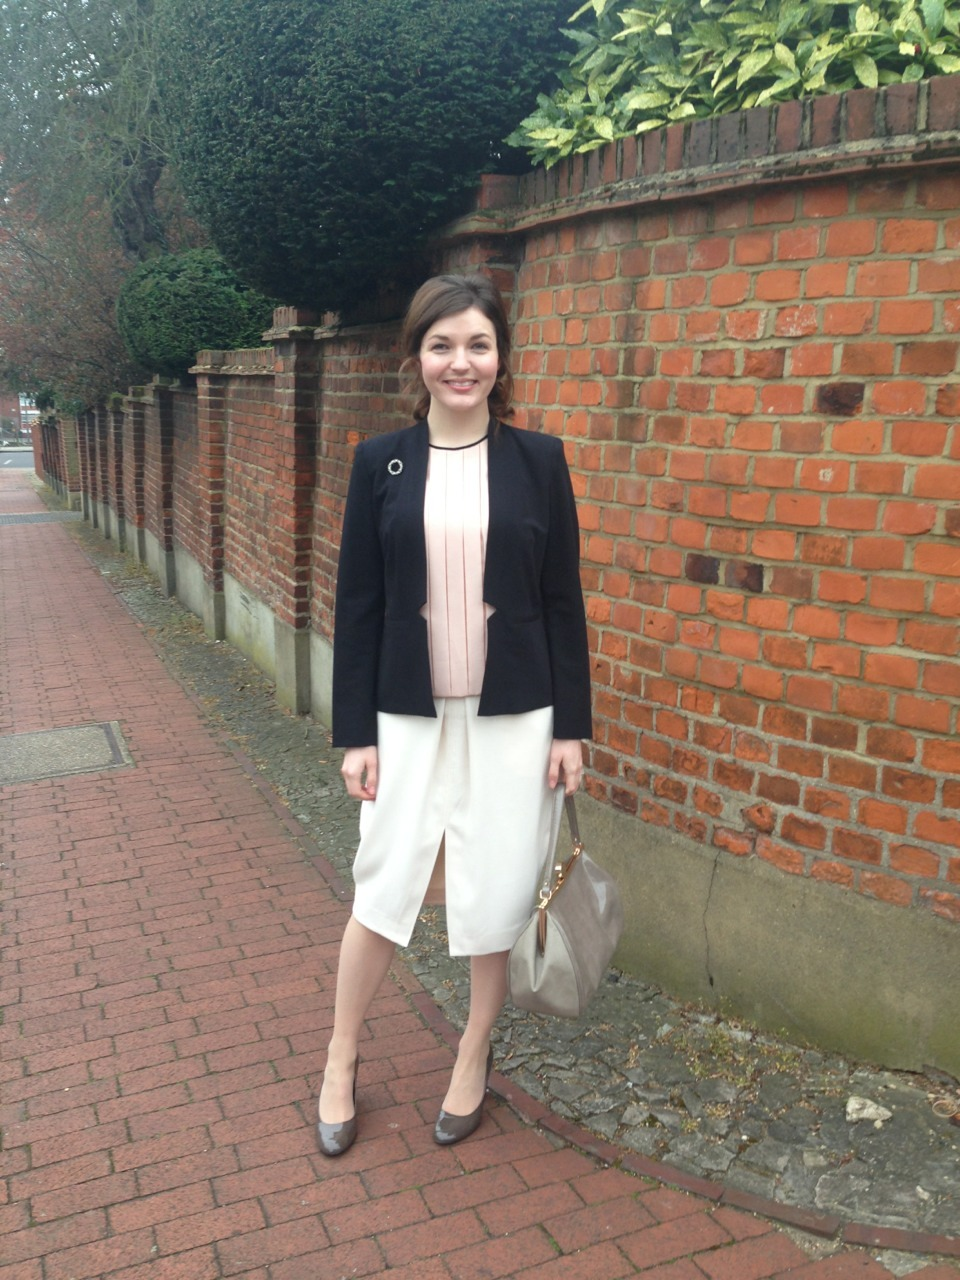 Tuesday 16 April 2013  London  Clad in a Reiss skirt, Laura Ashley shell top and Marks + Spencer blazer for a meeting in Central London. I accessorised with patent heels from Isola, a taupe bag from Marks + Spencer, and my grandmother's brooch.